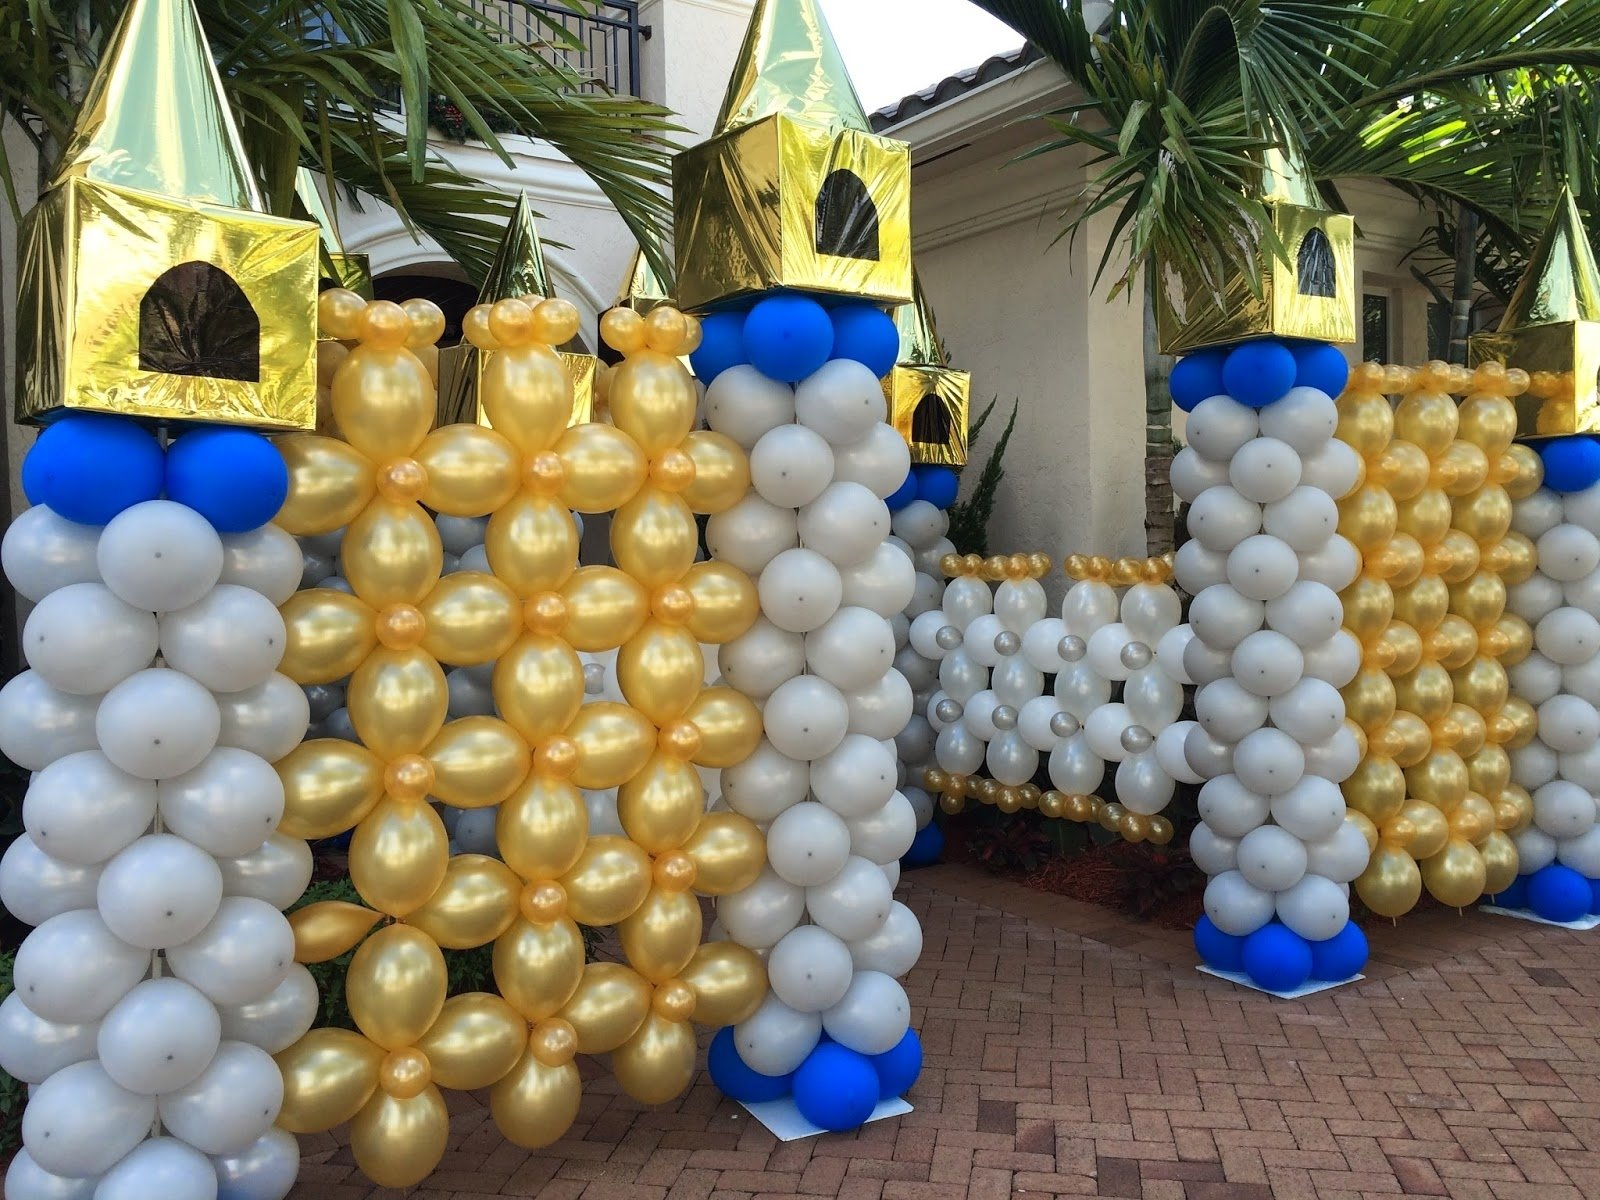 10 Elegant Princess And Prince Party Ideas dreamark events blog first birthday party decorations ideas prince 2020